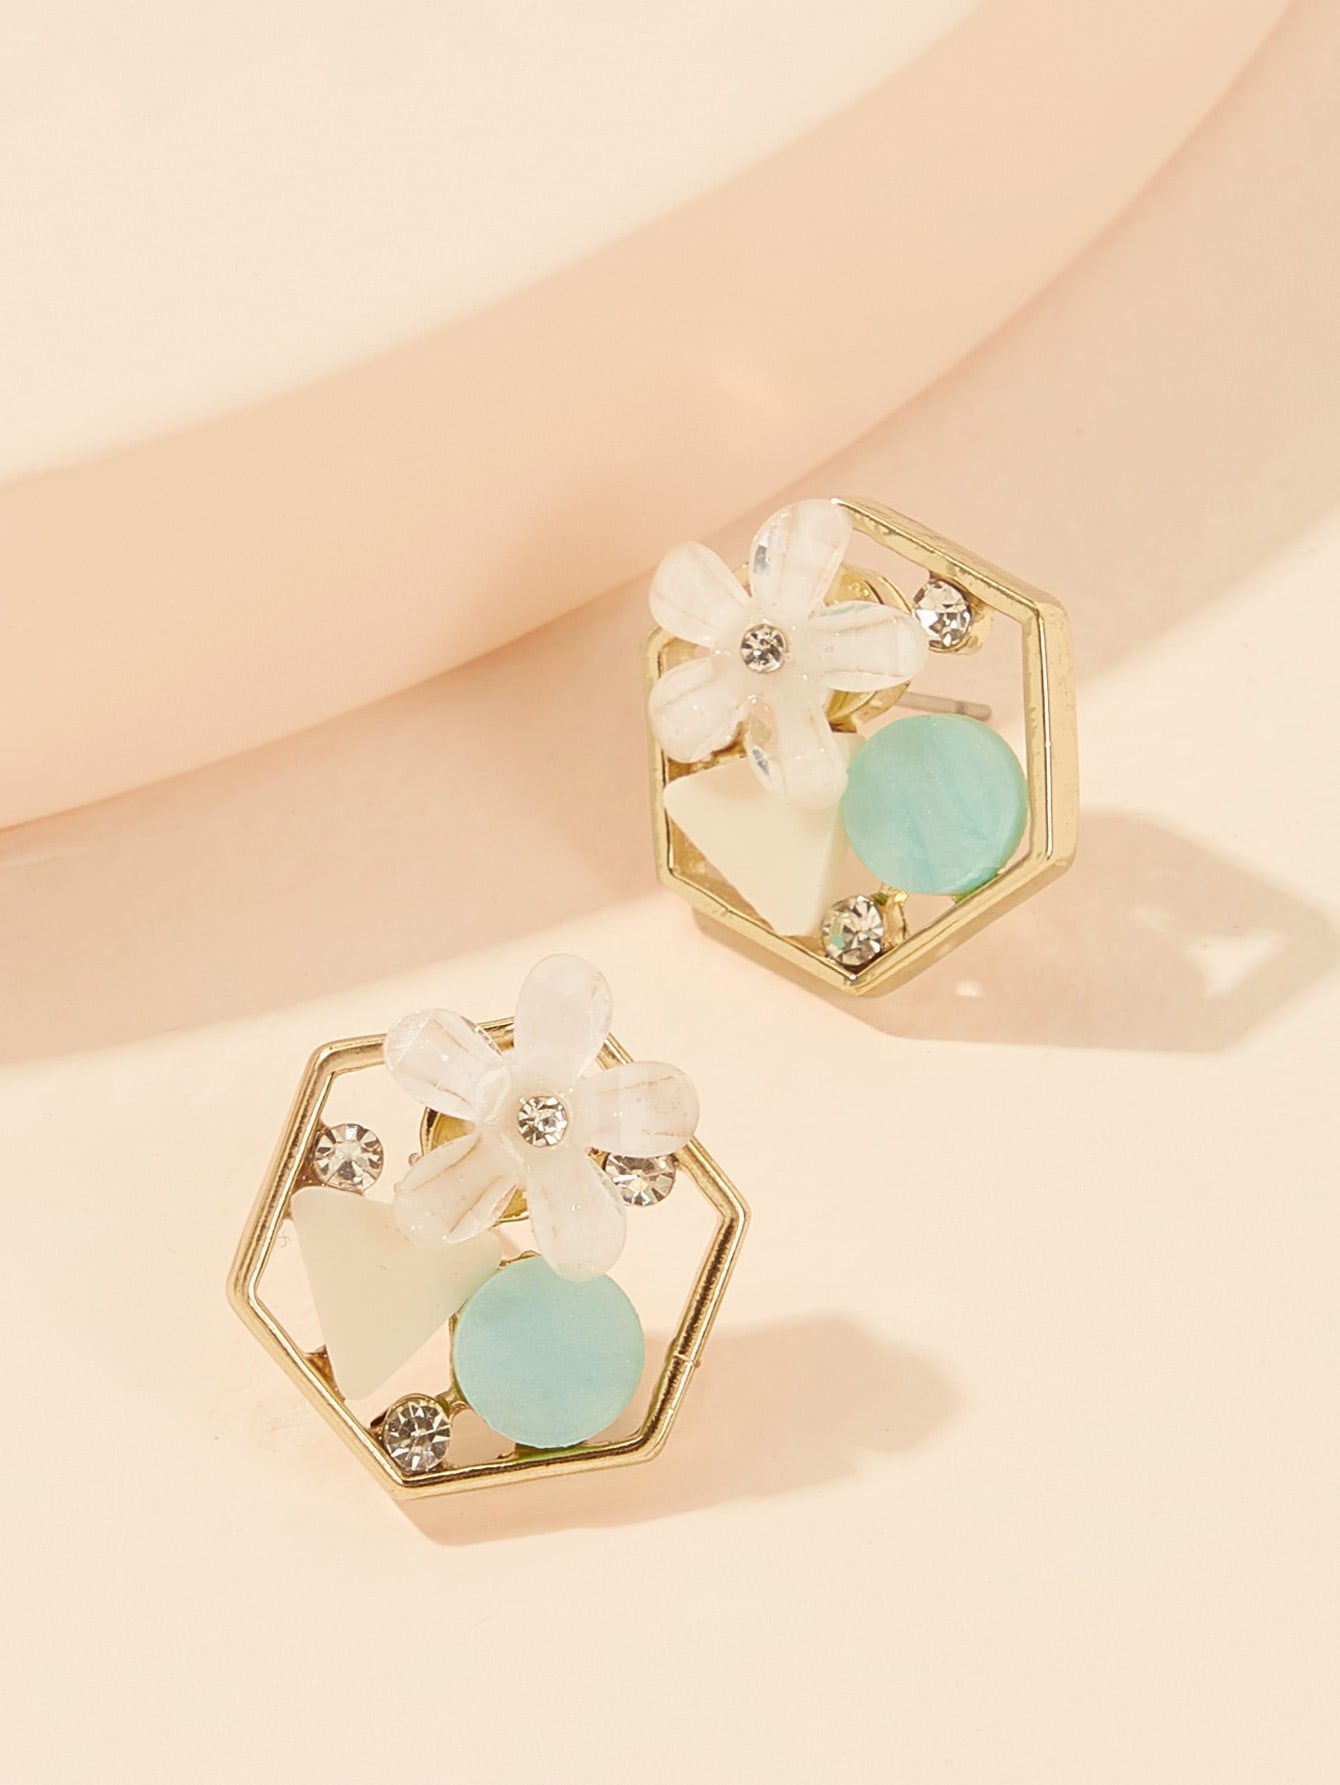 Golden Hexagon Shaped With Flower & Rhinestone Detail 1 Pair Stud Earrings